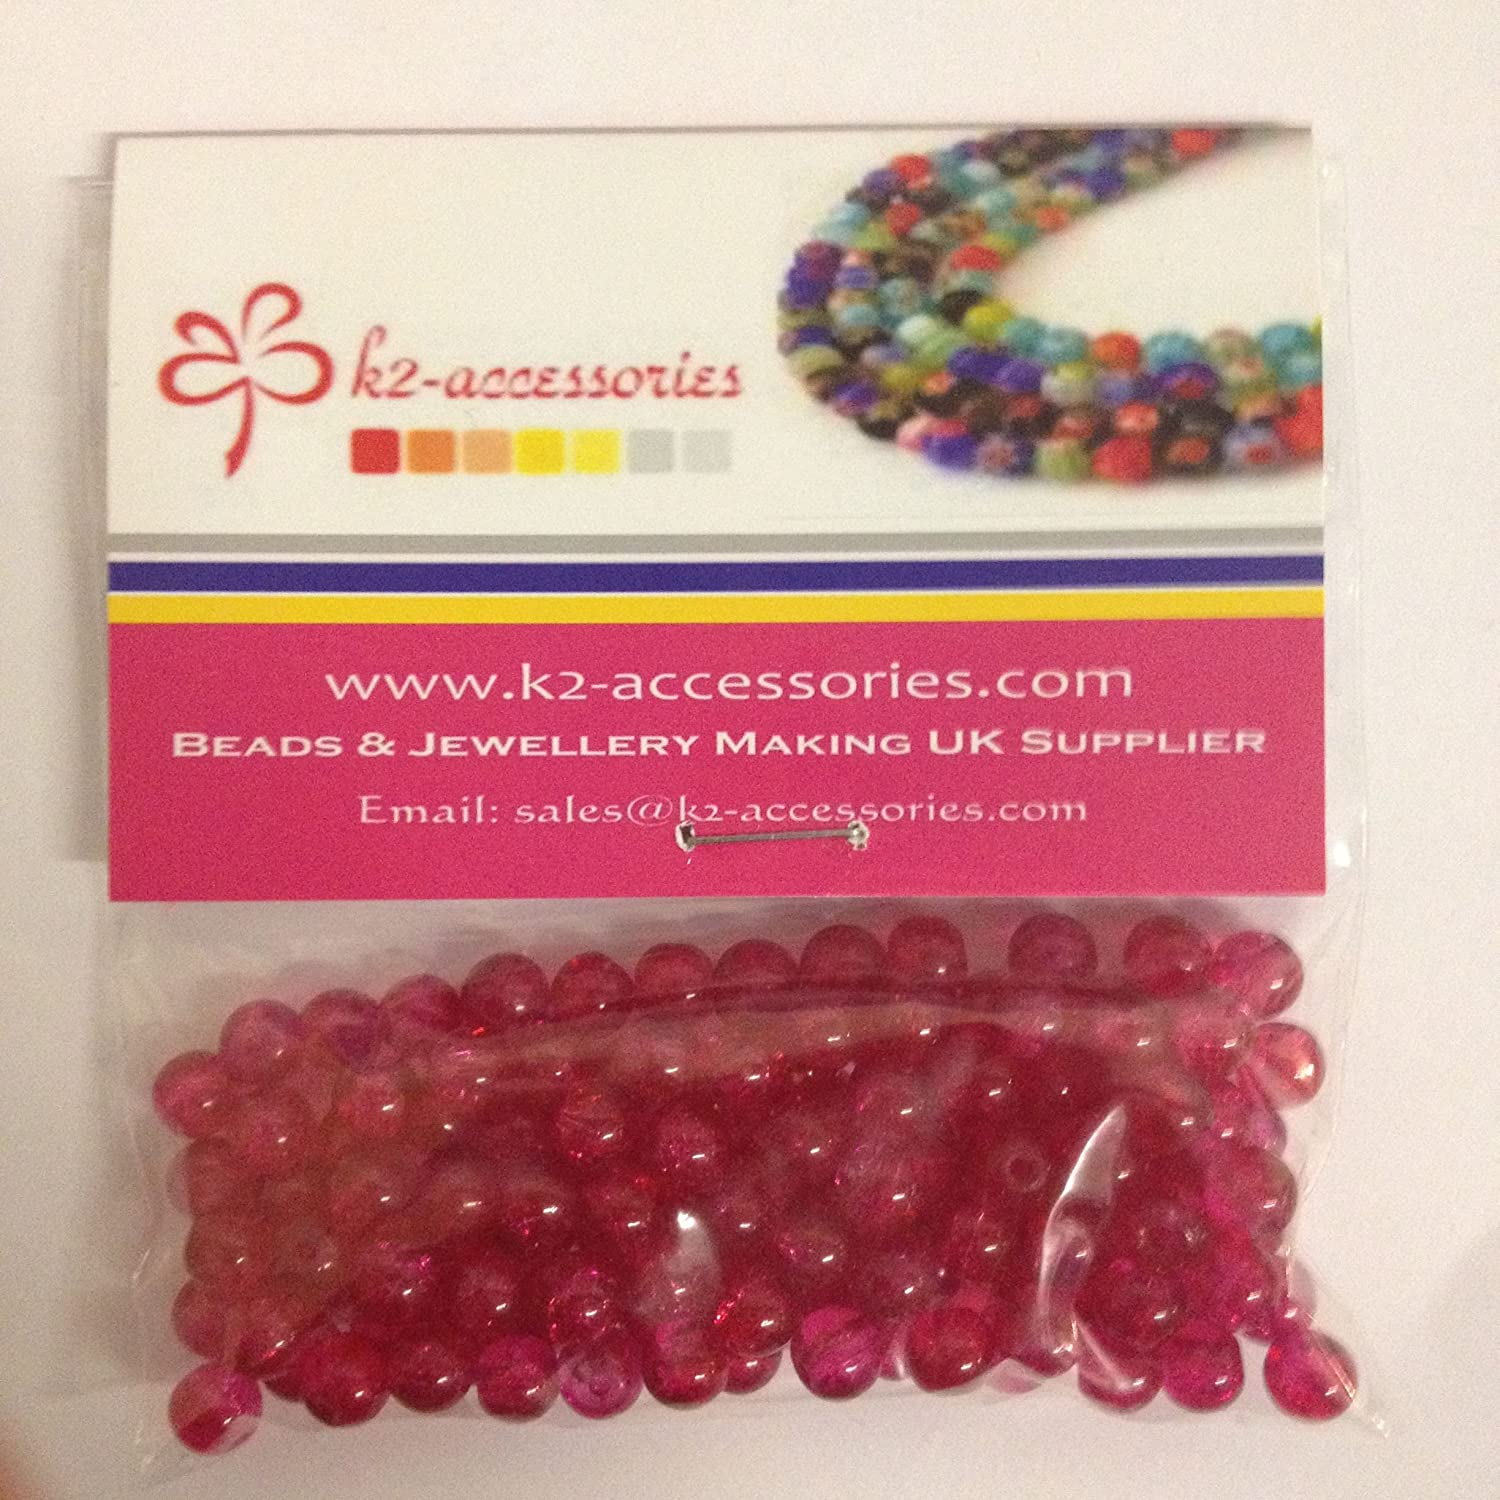 100 pieces 6mm Crackle Glass Beads - Shocking Pink - A1630 k2-accessories